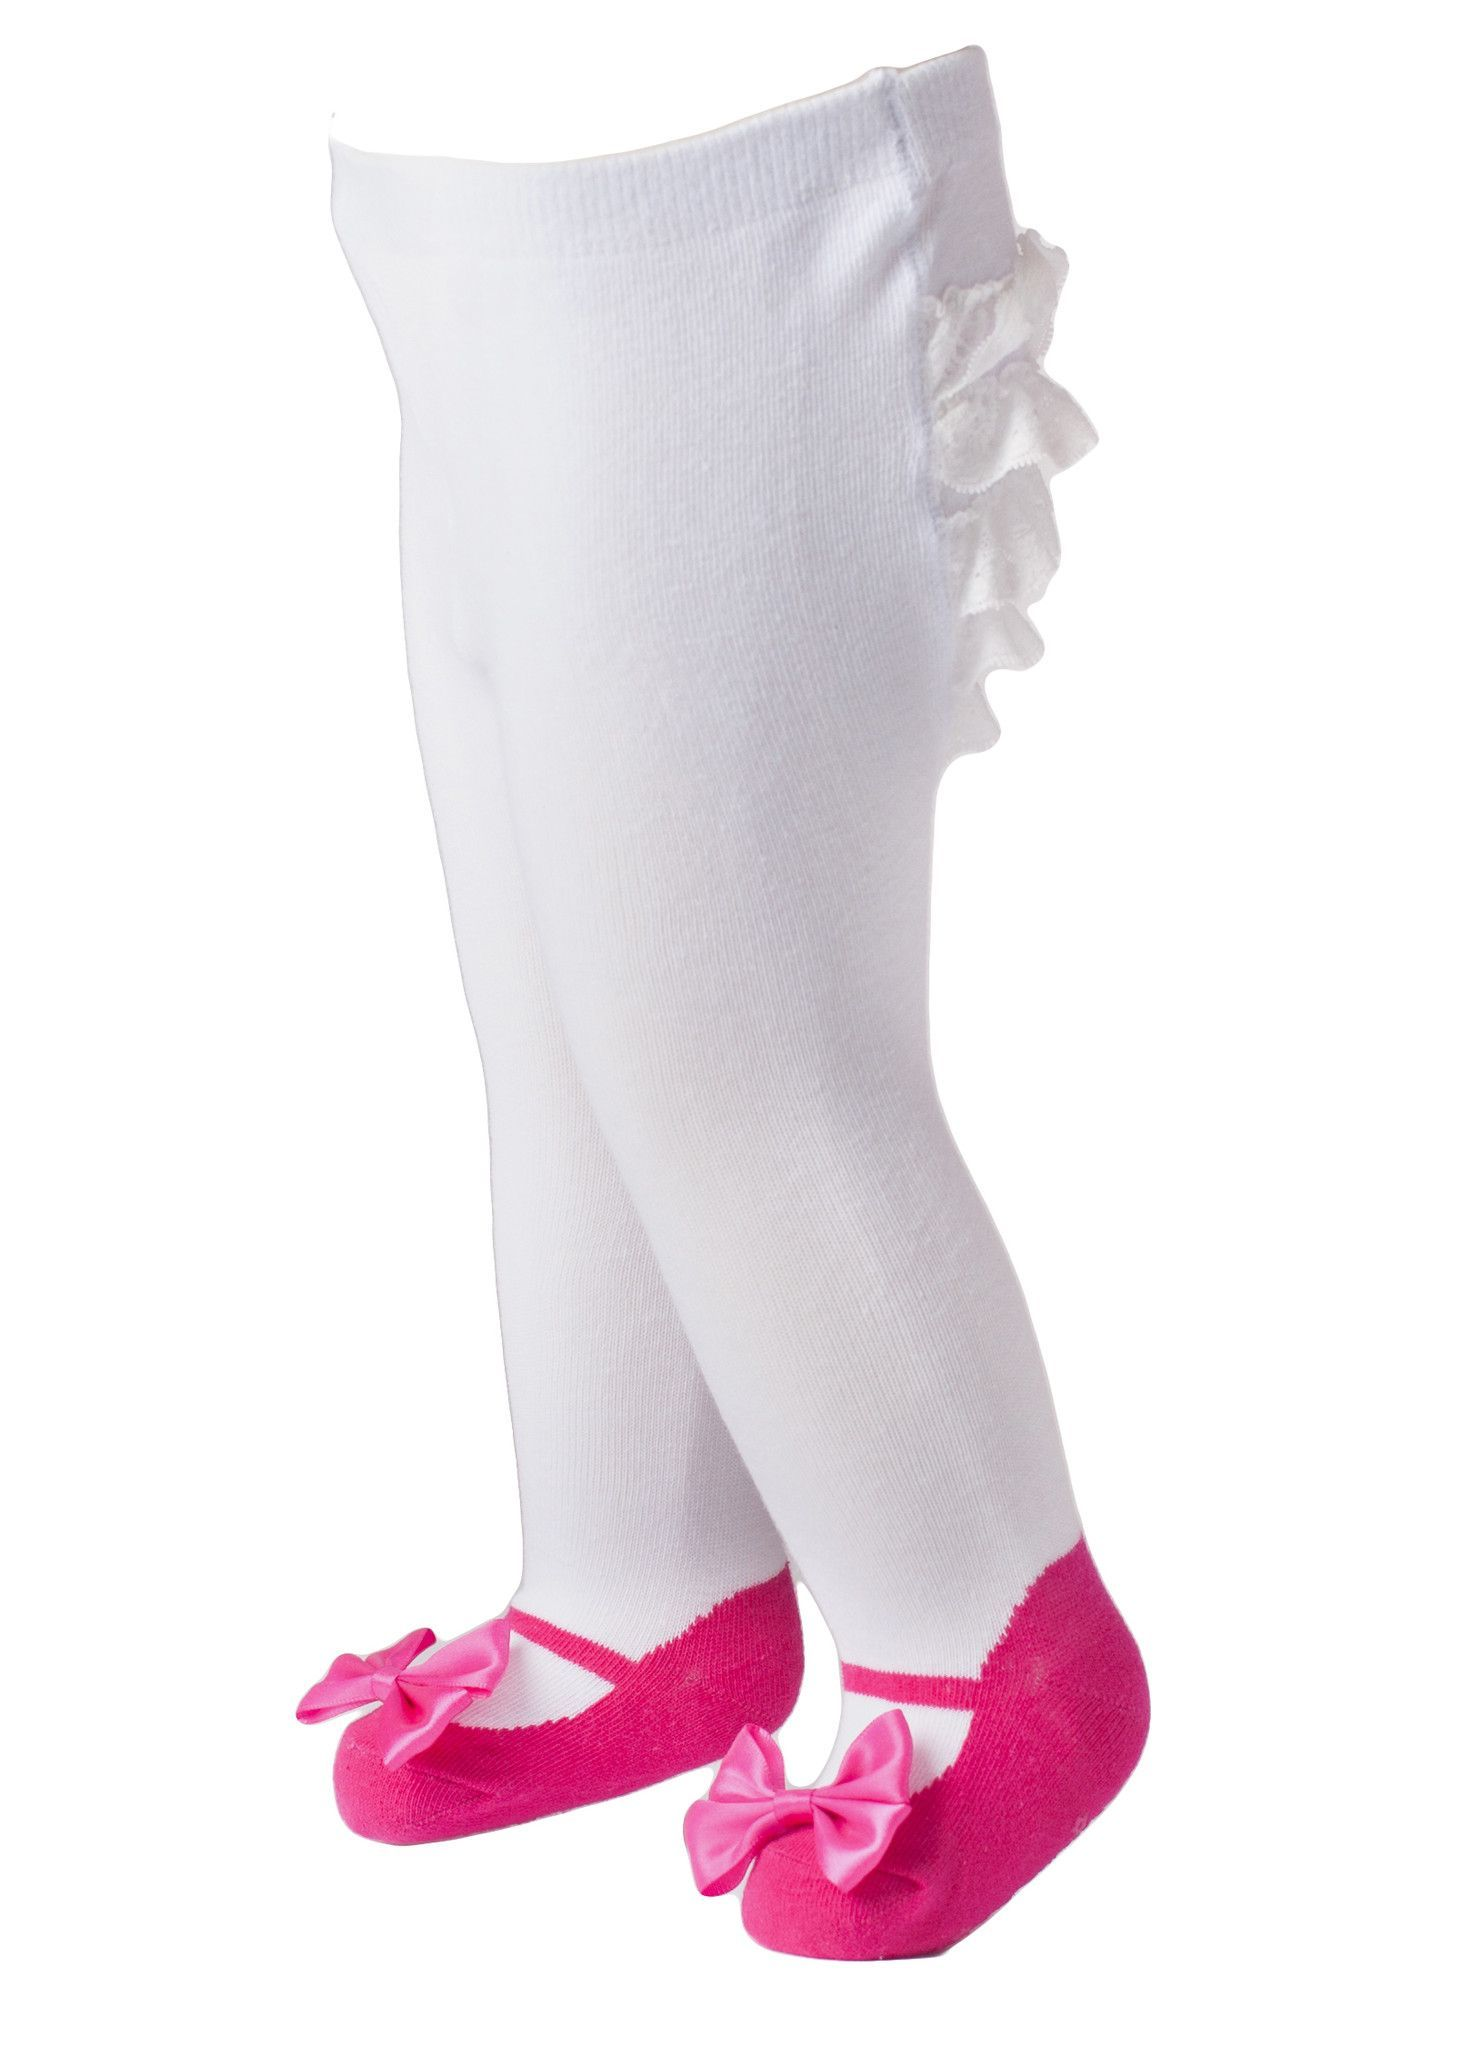 Baby Strumpfhosen Set Mary Jane Tights Fuchsia Bow Shoes And Ruffle Bum Products